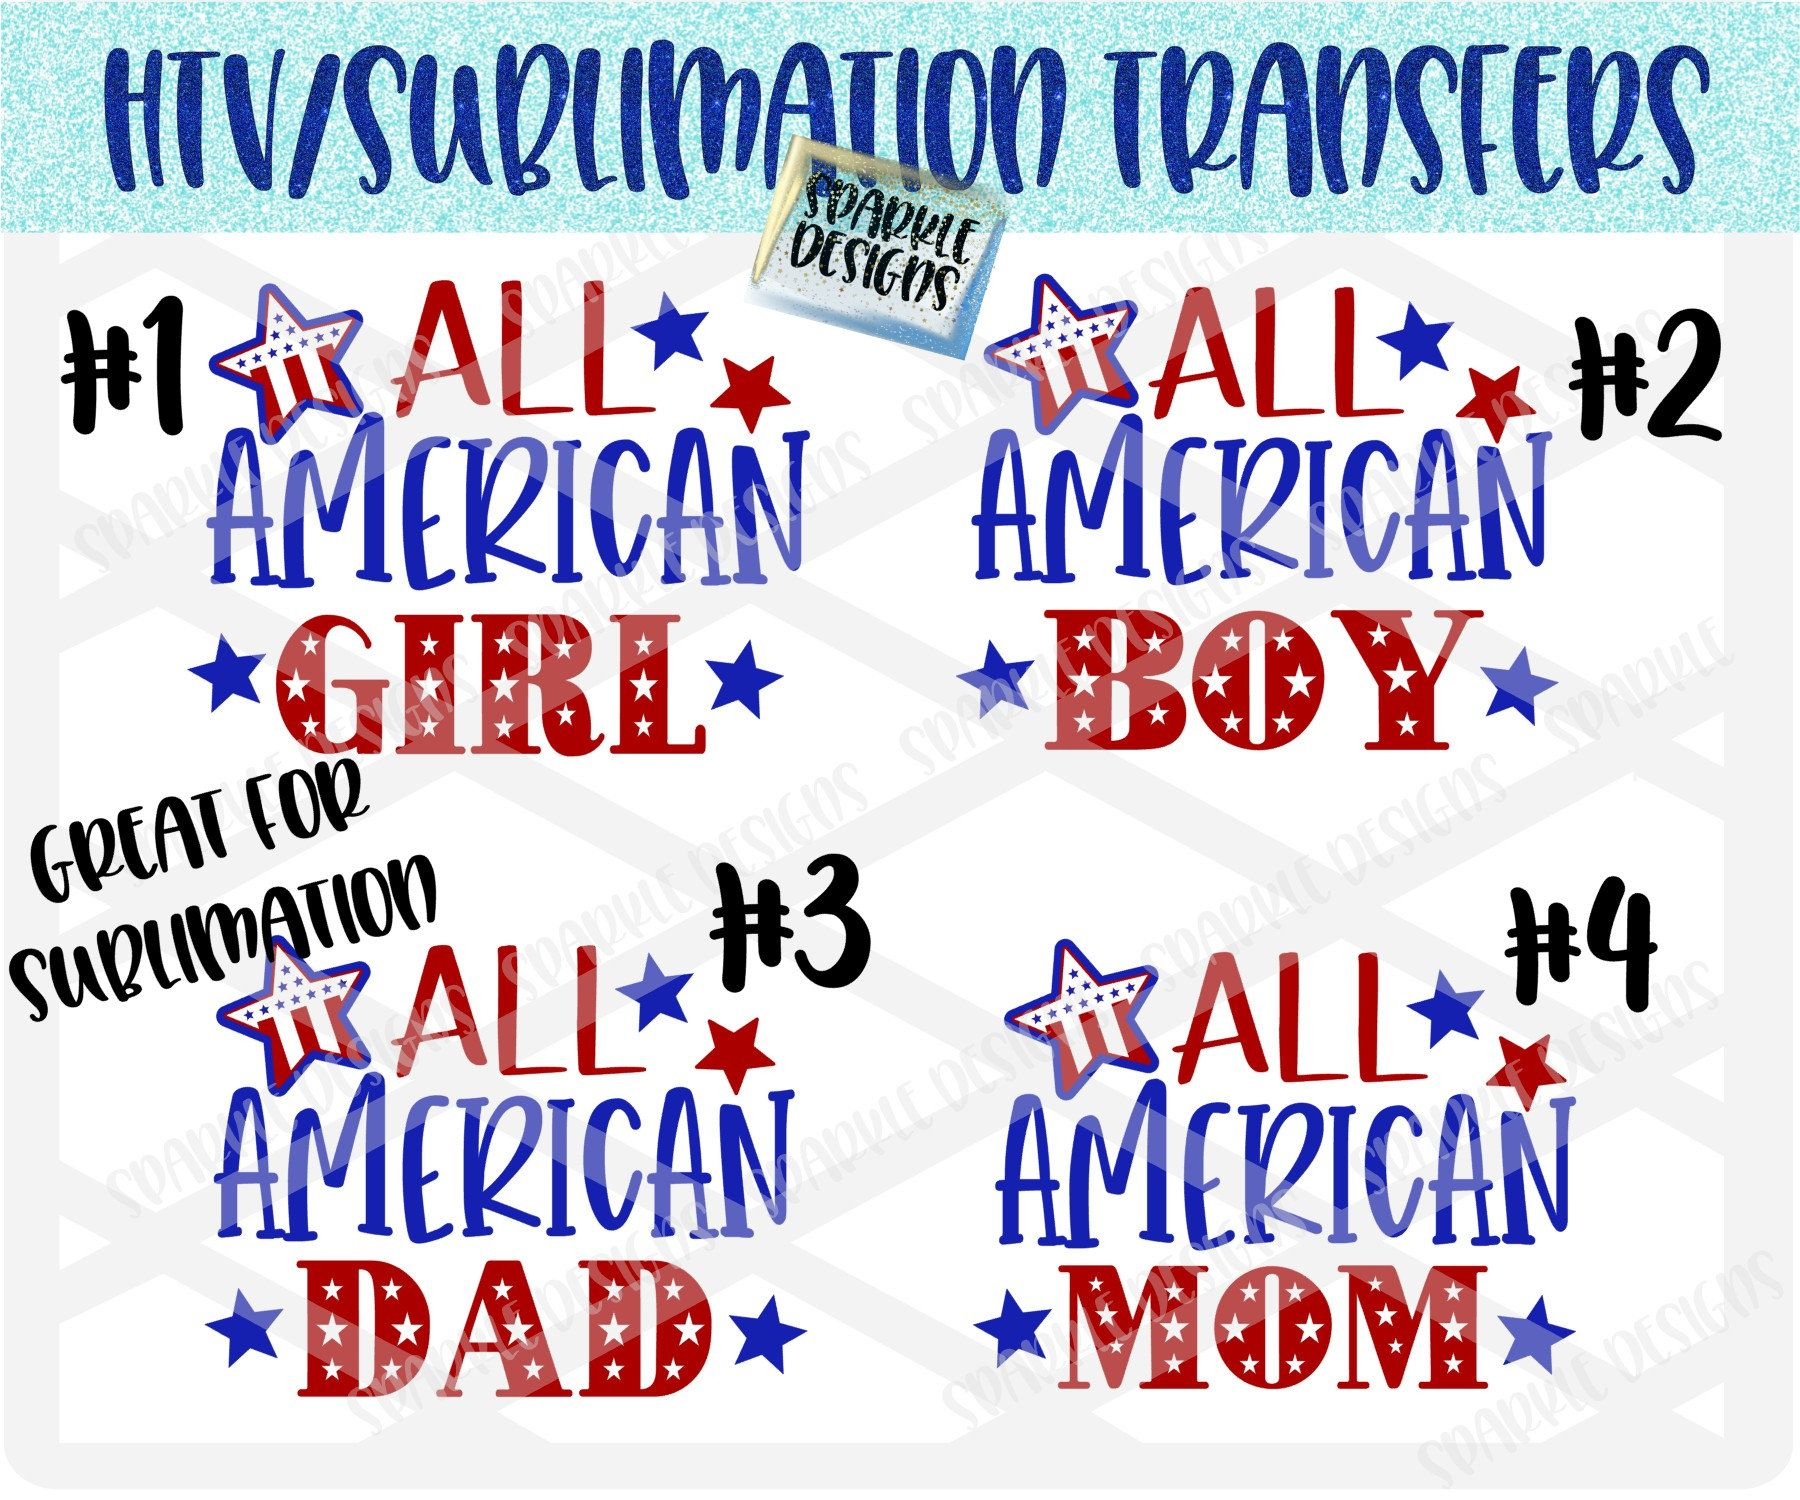 All American Girl Boy Mom Dad Htv Transfer Sublimation Transfer Ready To Press Iron On Independence Day 4th Of July Family Shirts Mom Dad American Girl All American Girl